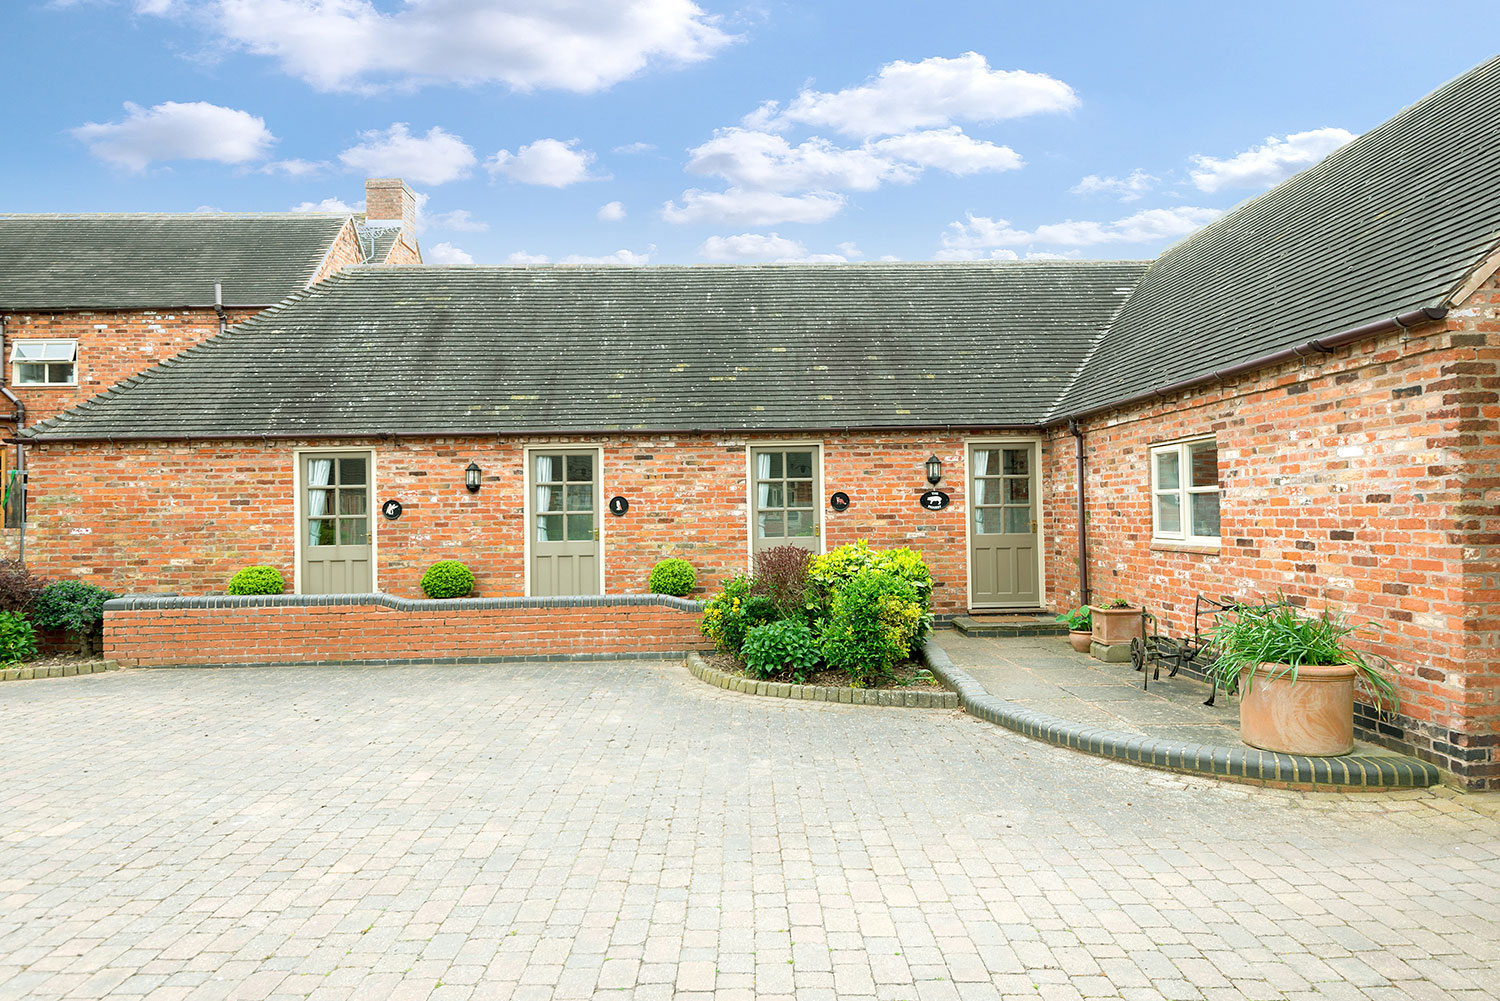 The Piggery, luxury holiday cottage in central UK   Upper Rectory Farm Cottages